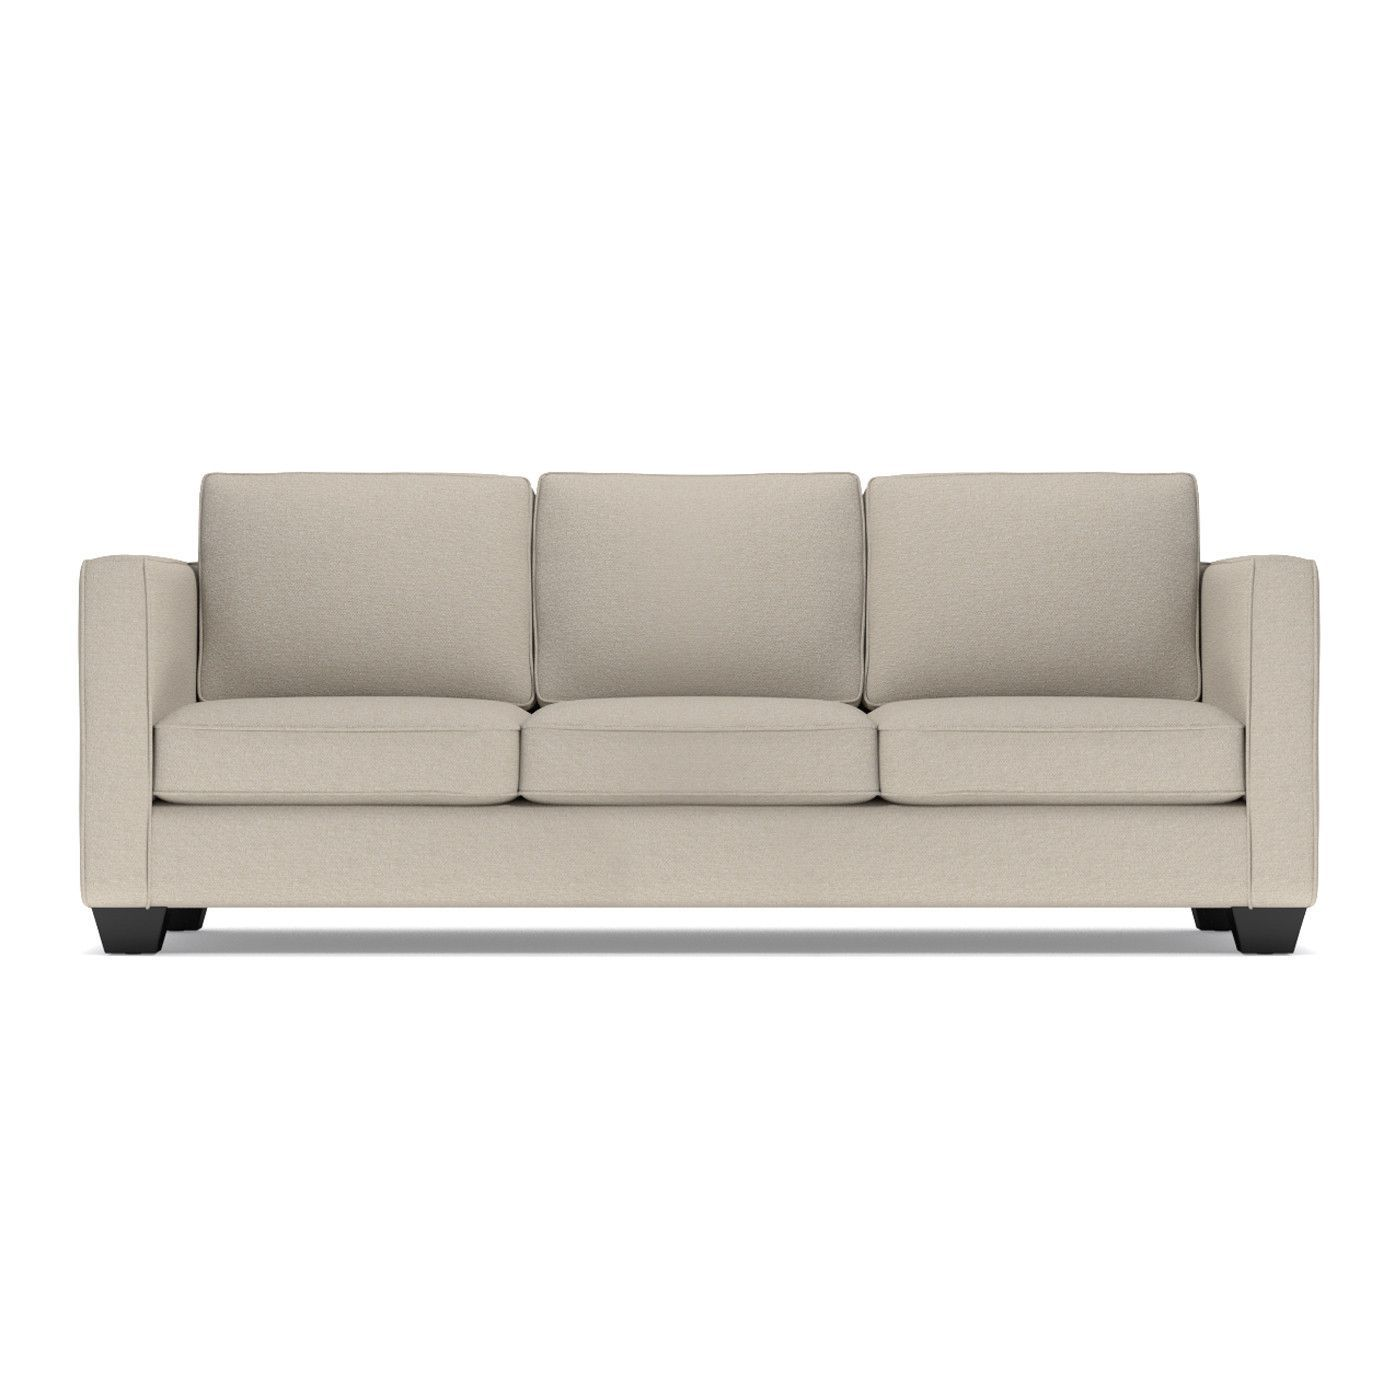 Catalina Sleeper Sofa Queen Size CHOICE OF FABRICS